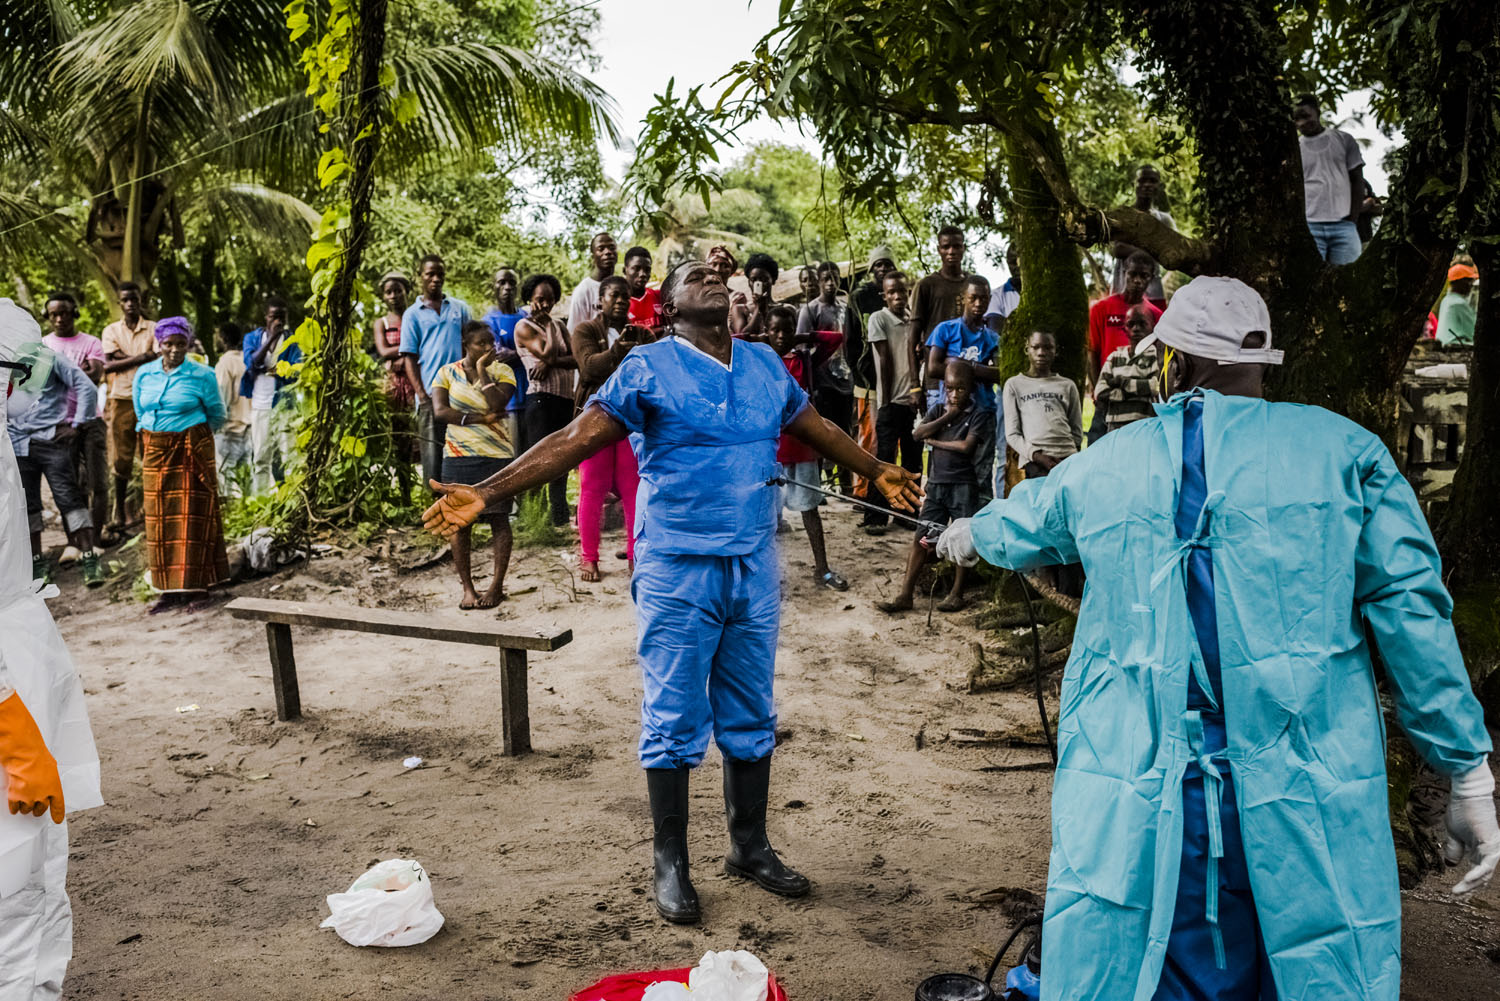 A member of a Liberian Red Cross burial team is disinfected, with chlorine sprayed on by a colleague, after having  removed the body of a man, a suspected Ebola victim, on Sept. 6, 2014 in Monrovia, Liberia.